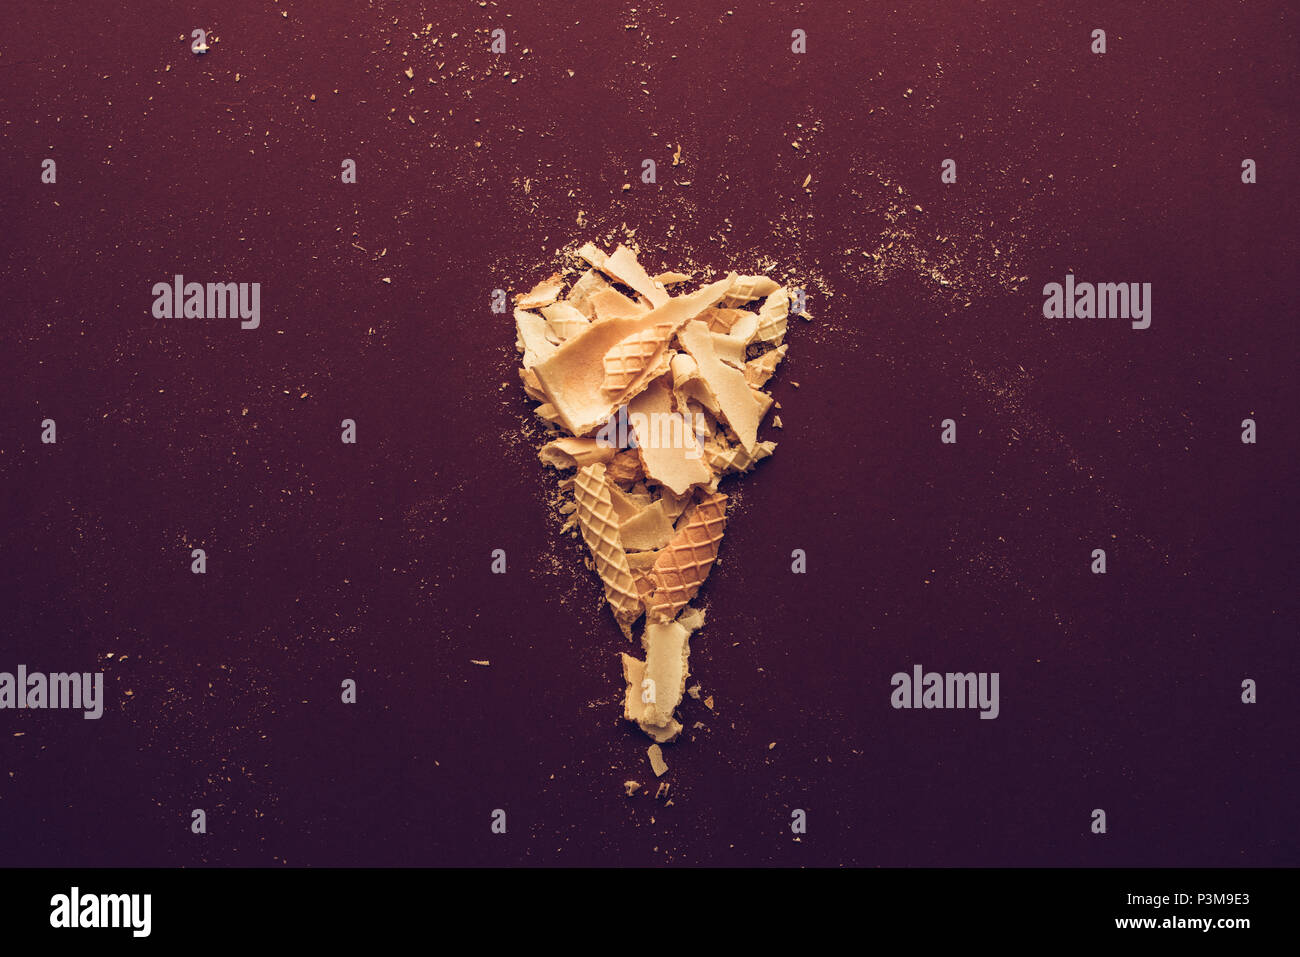 Crushed ice cream cone on dark brown background, flat lay - Stock Image